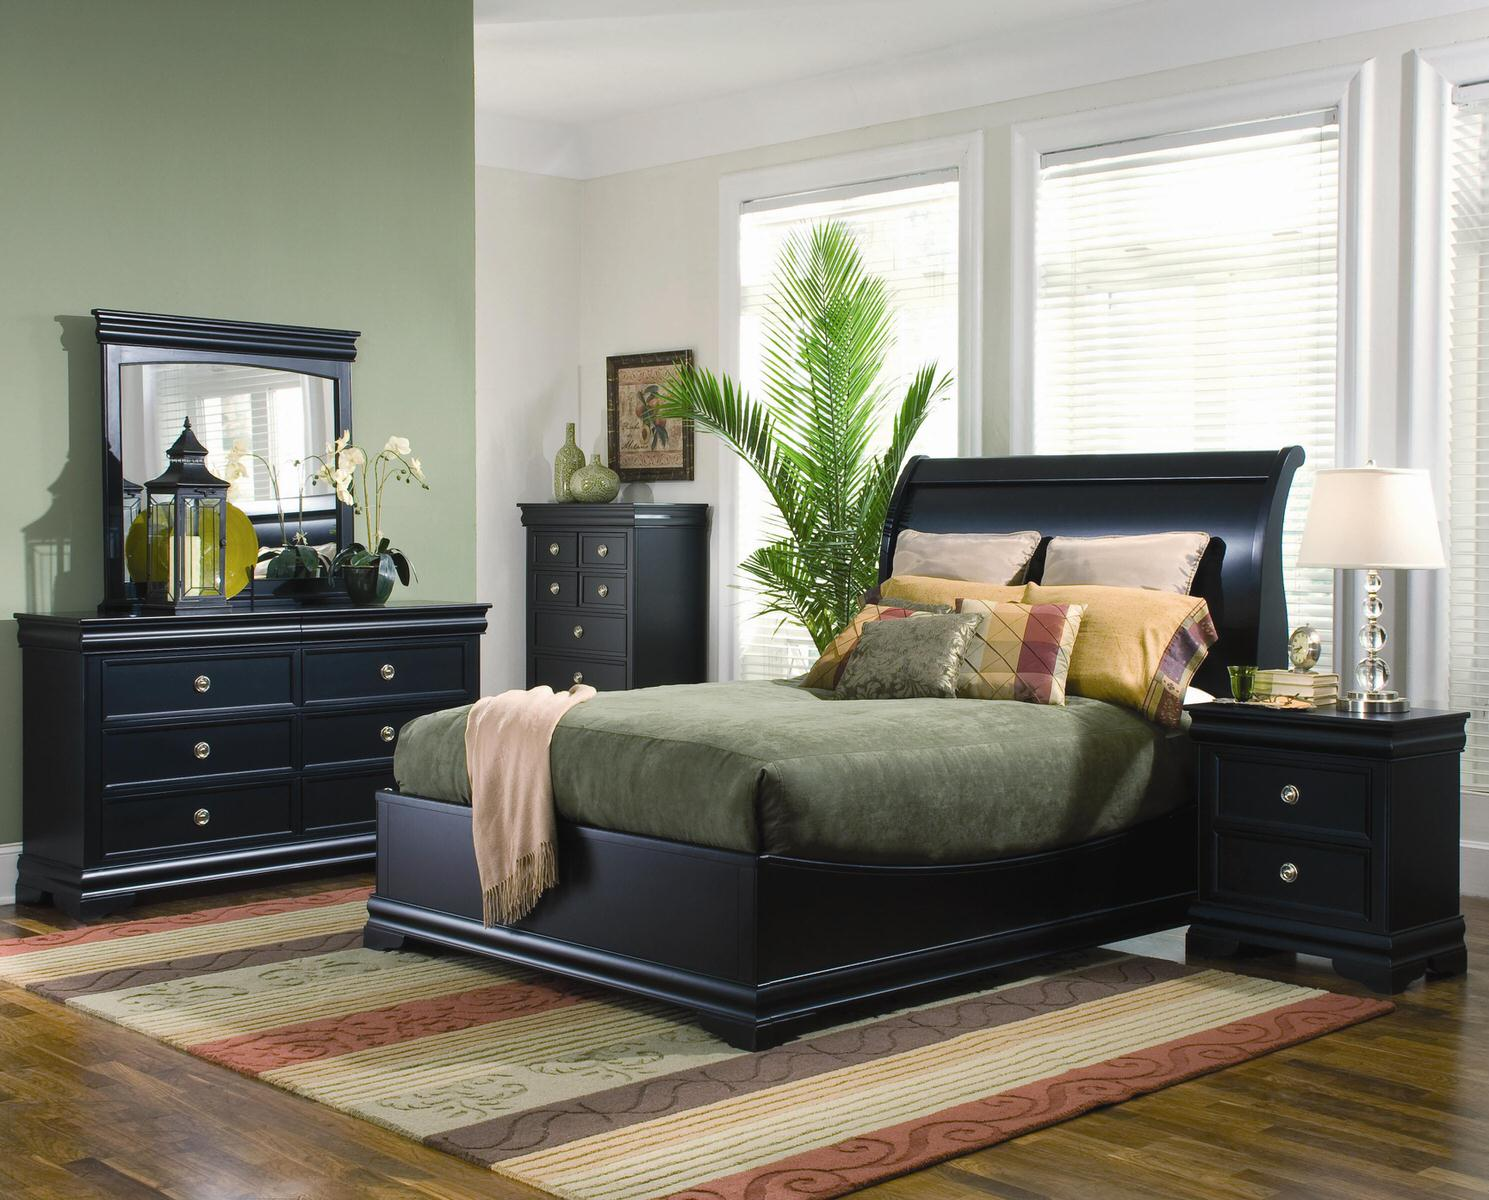 Duncan By Generations Bedroom Set By Coaster